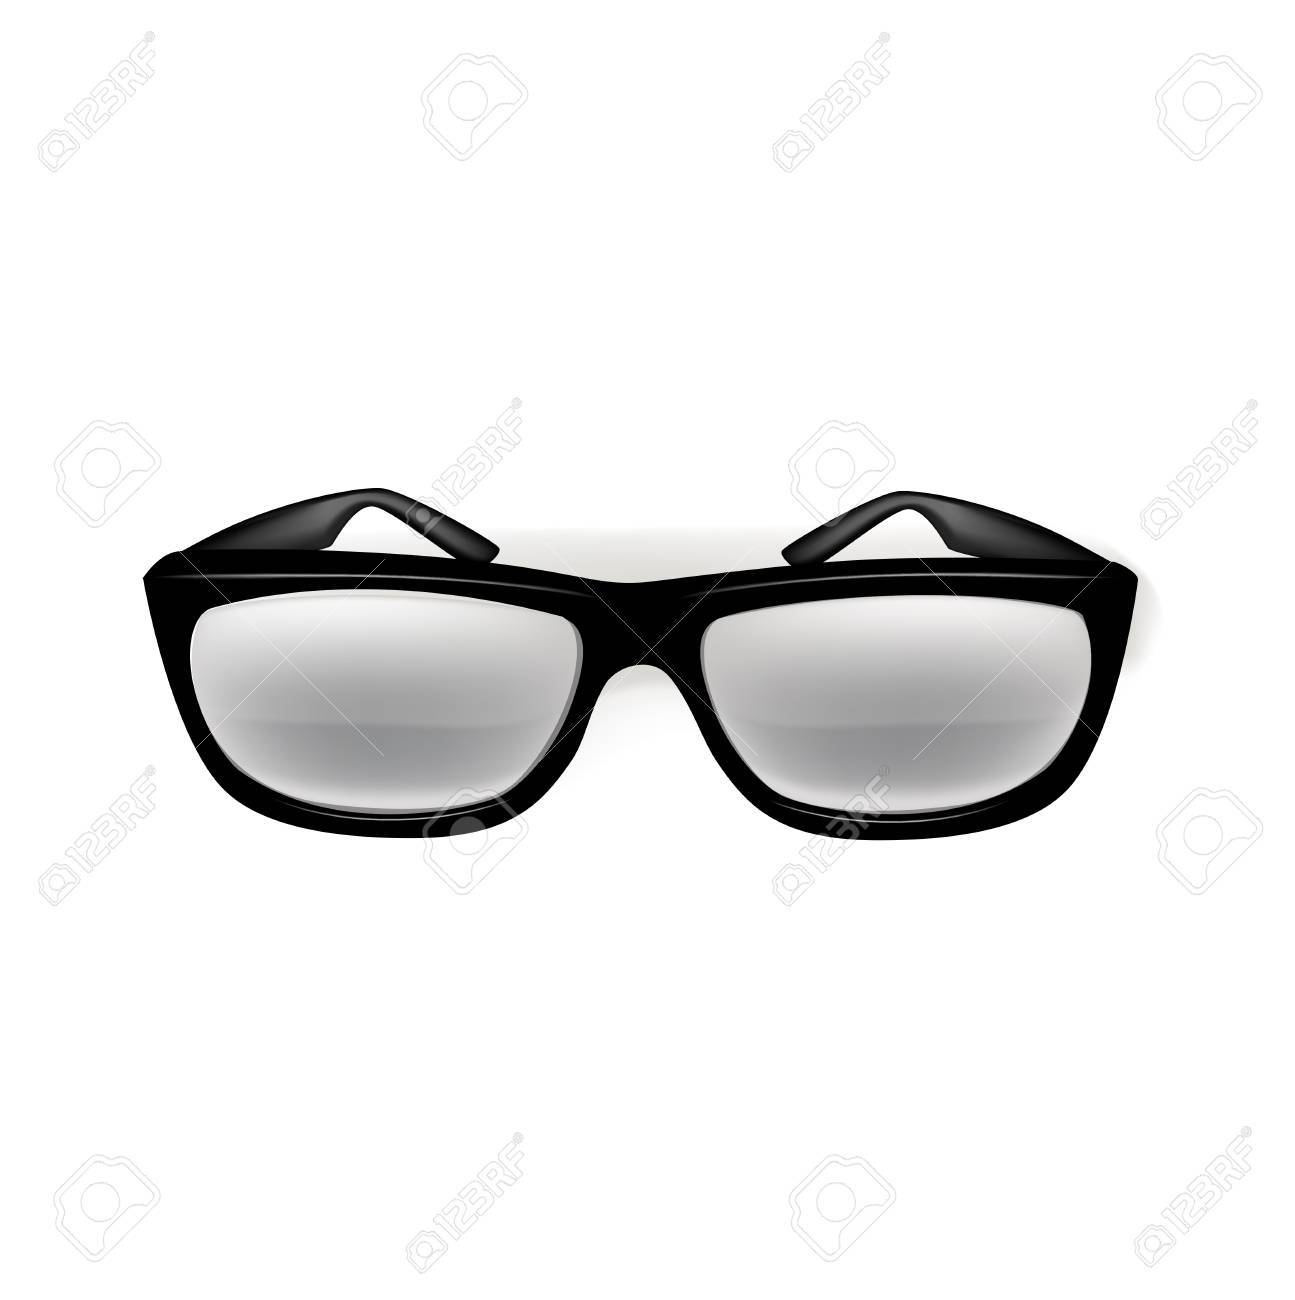 glasses isolated on white background Stock Vector - 20464159